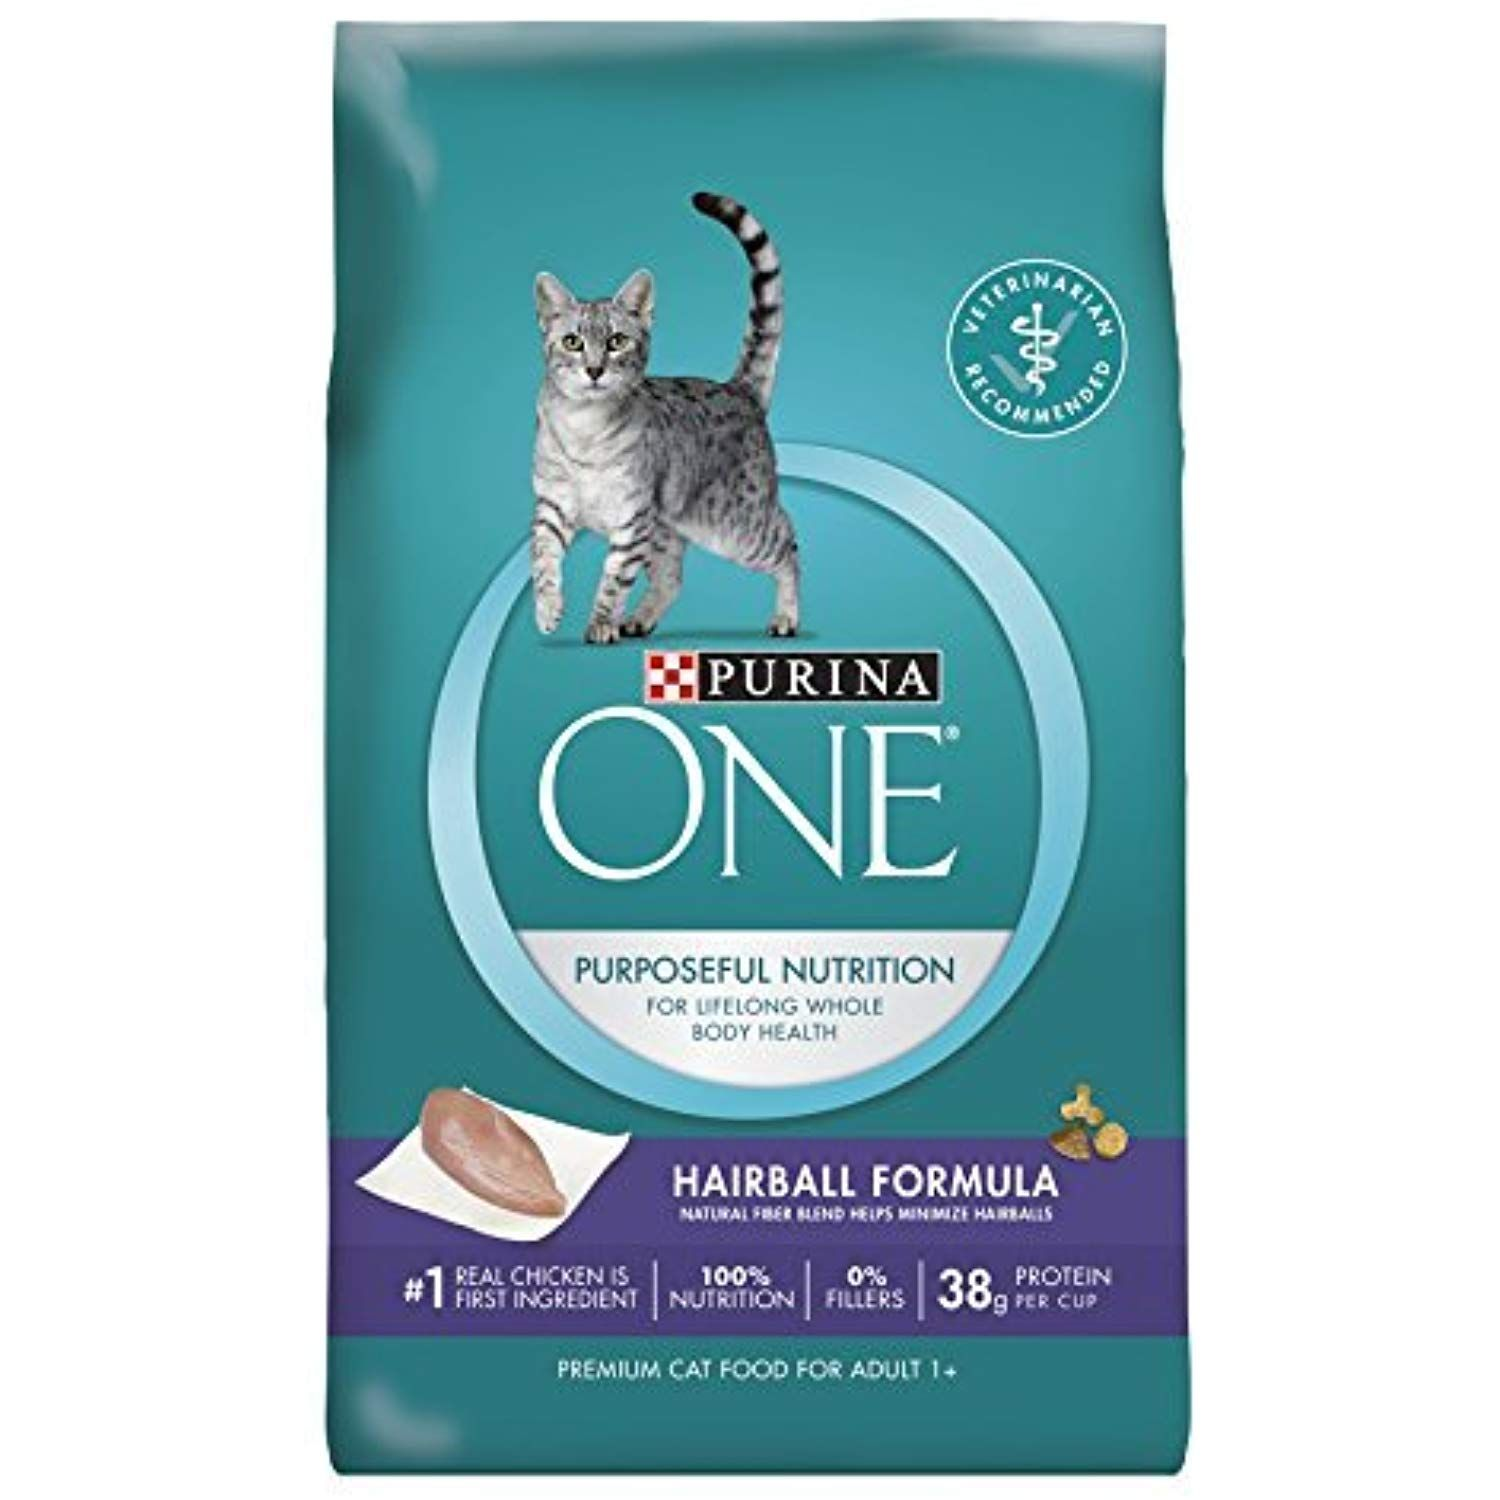 Purina One Dry Cat Food Hairball Formula 7 Pound Bag By Purina One Visit The Image Link More Details This Is An Affili Kitten Food Dry Cat Food Cat Food